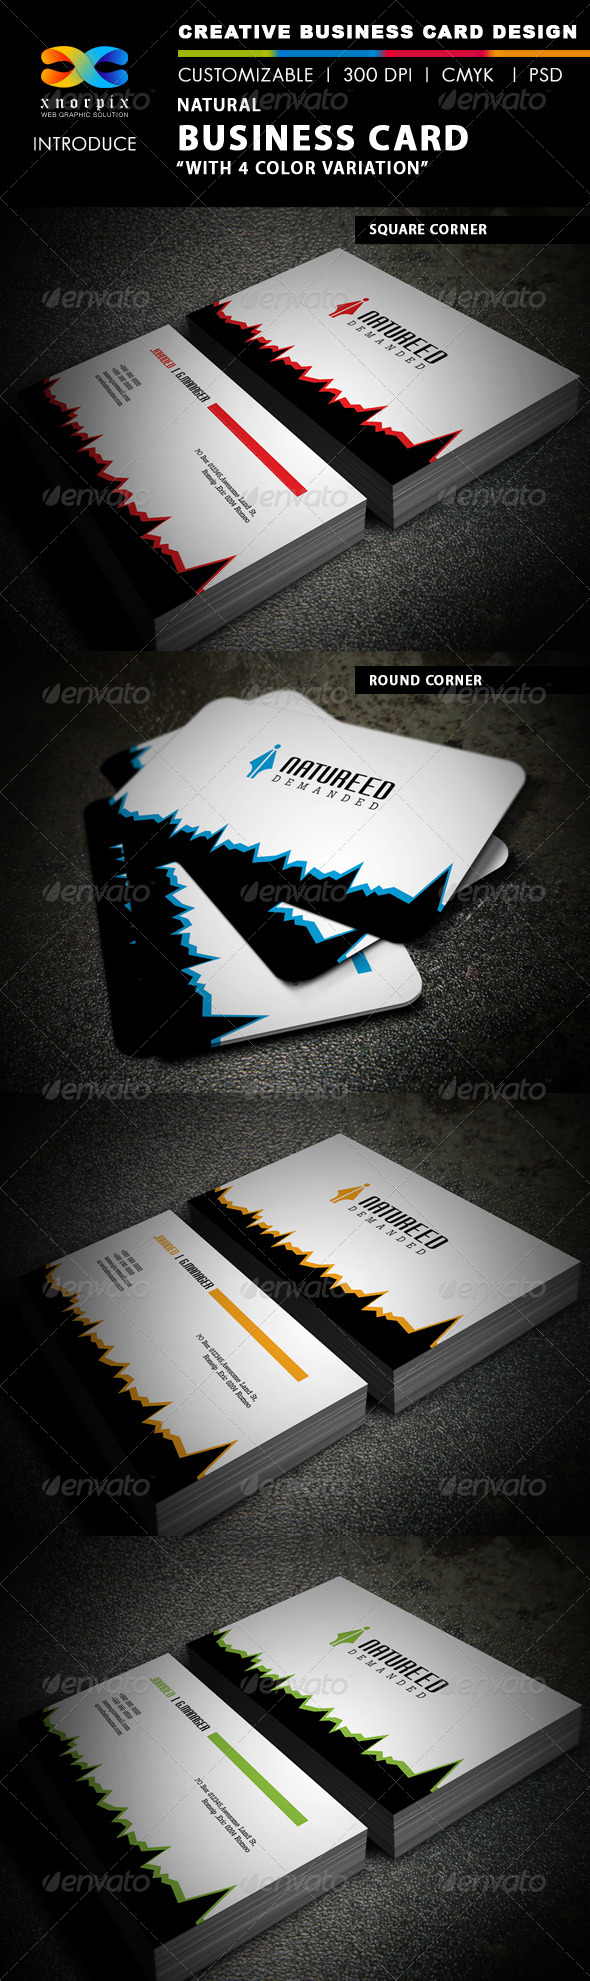 Natural Business Card - Creative Business Cards